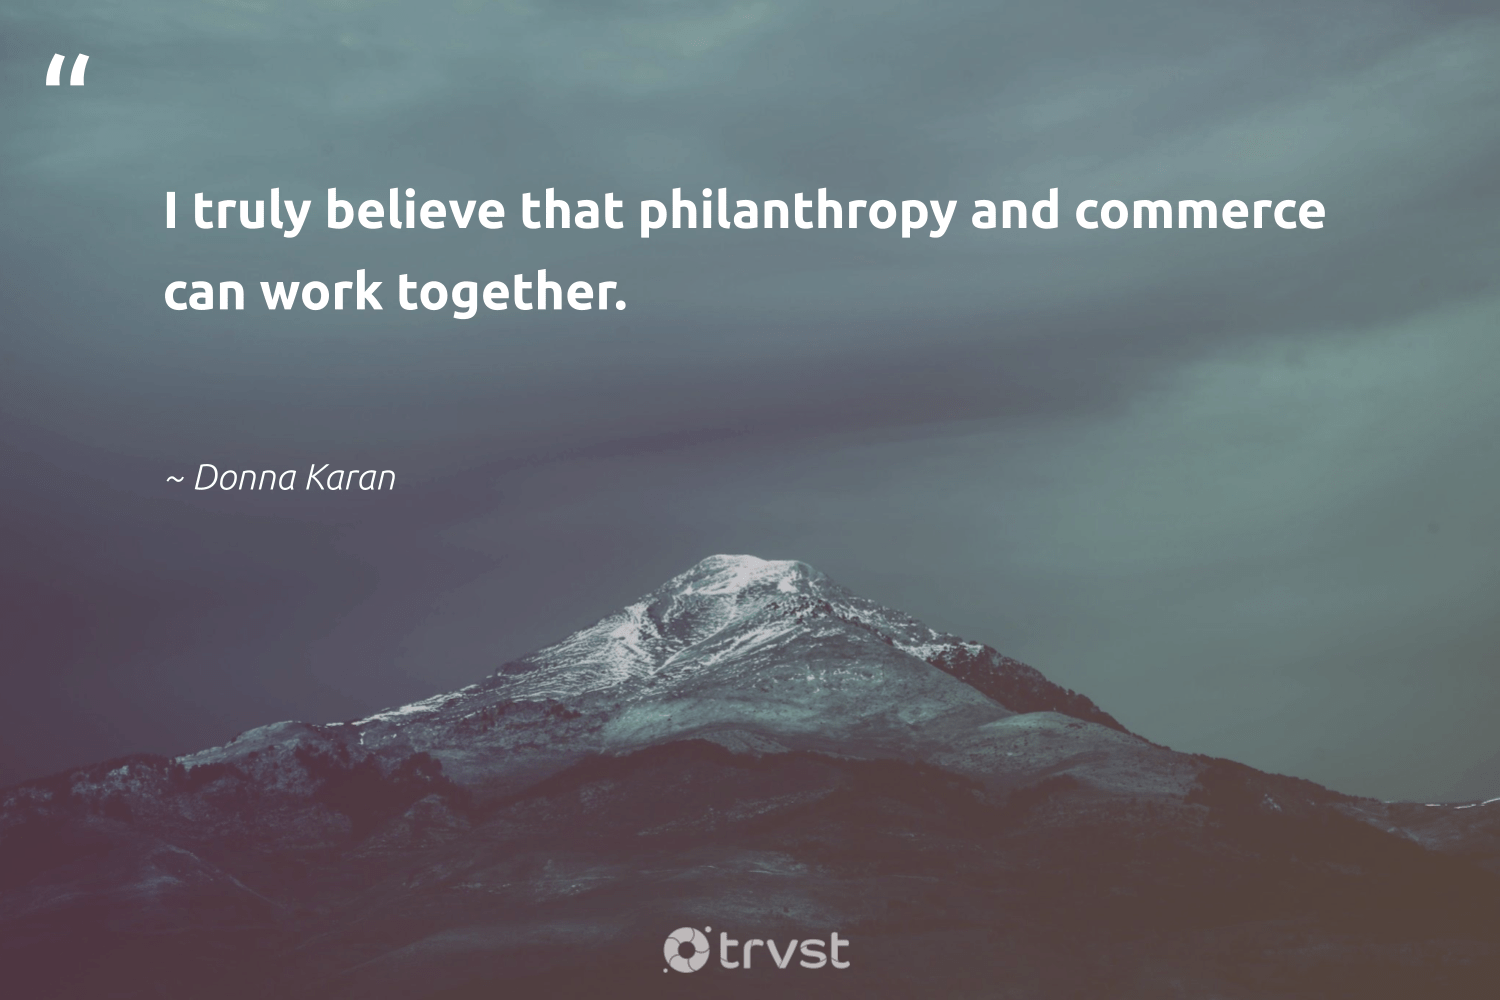 """I truly believe that philanthropy and commerce can work together.""  - Donna Karan #trvst #quotes #philanthropy #philanthropic #giveforthefuture #togetherwecan #dosomething #changemakers #itscooltobekind #collectiveaction #impact #planetearthfirst"